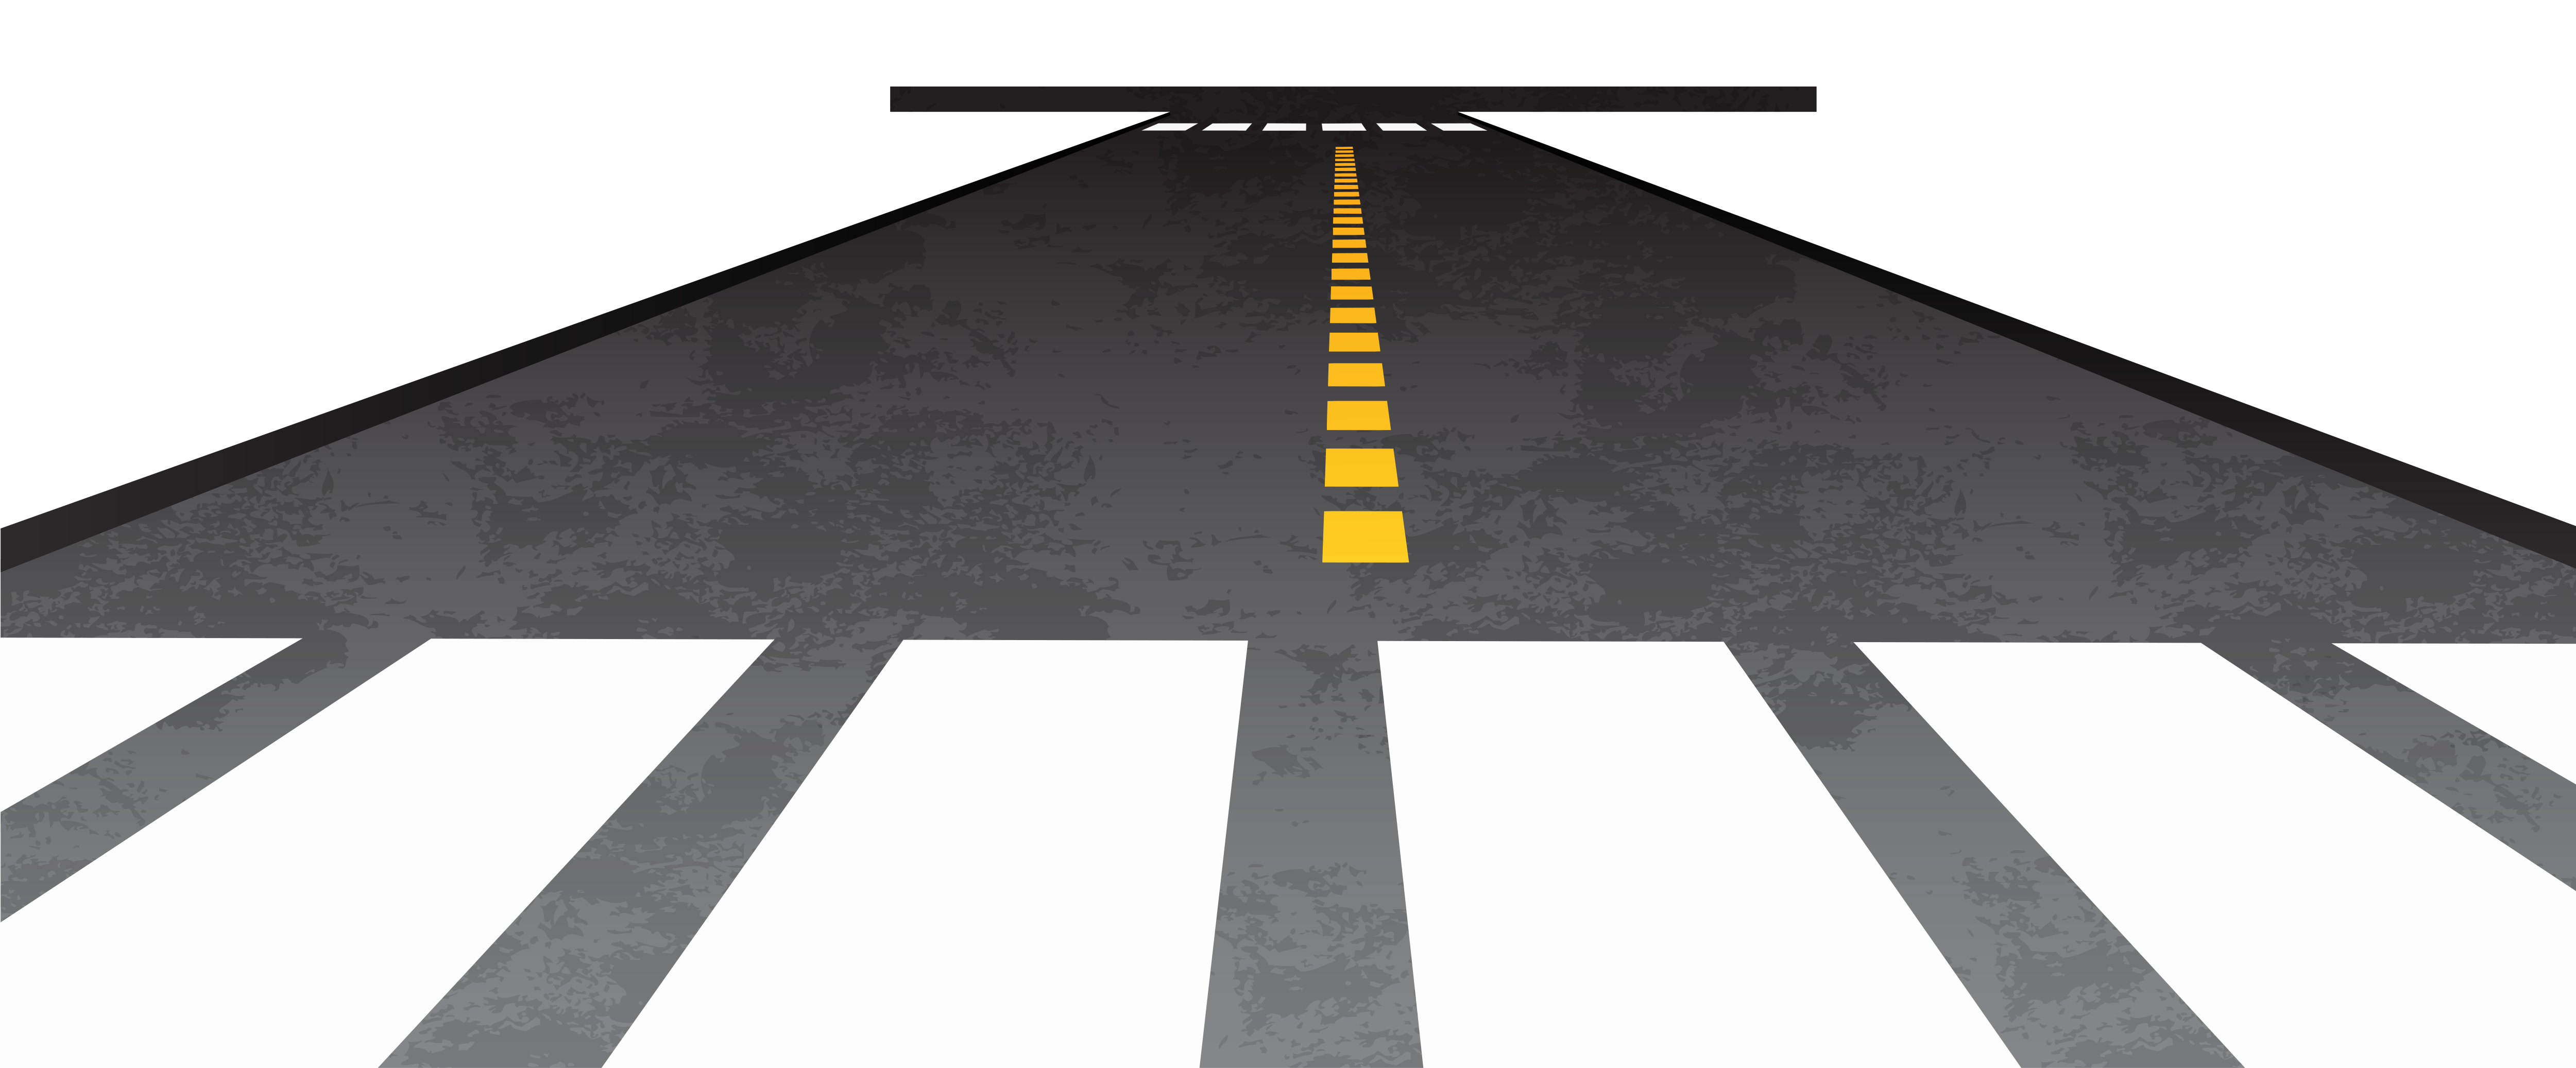 5001x2074 Road Png Clipart Pictureu200b Gallery Yopriceville